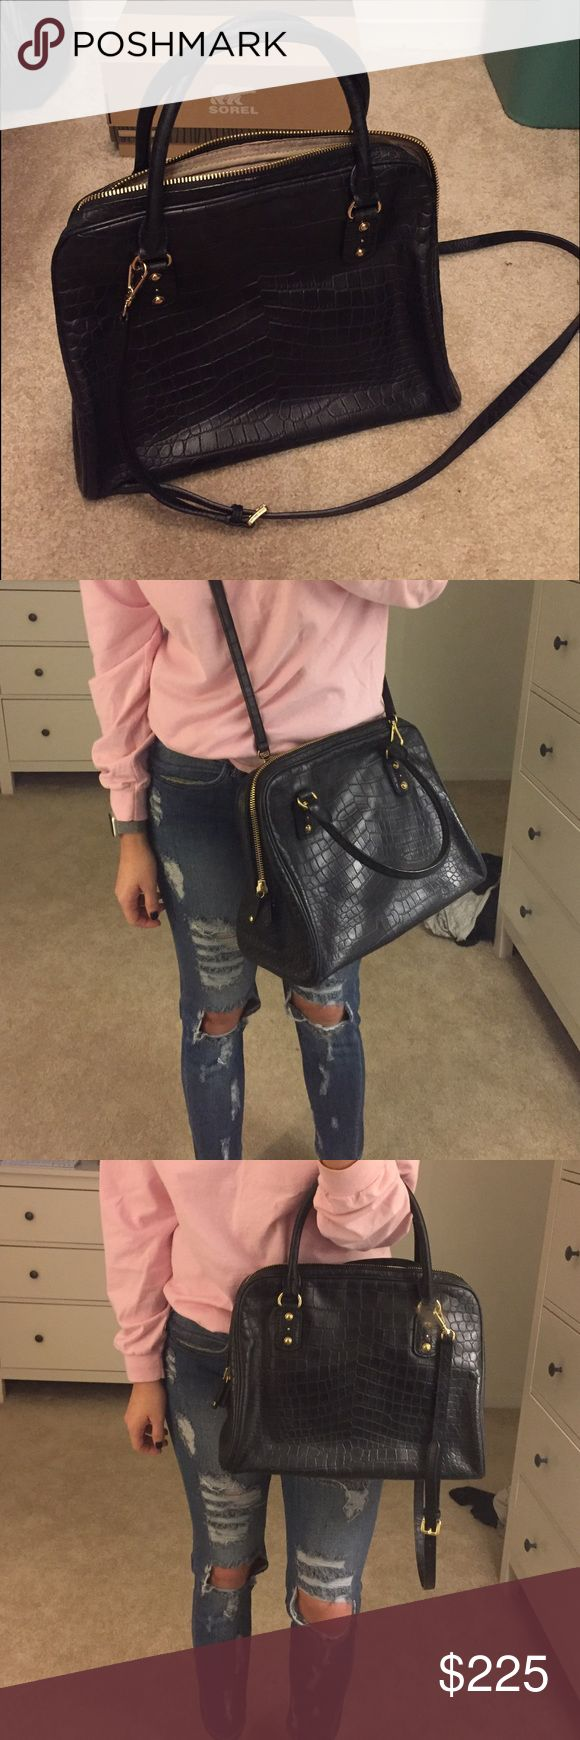 Michael kors large crocodile satchel Michael kors large satchel. Barely used! Amazing black bag that can be used as a crossbody or handle bag. Michael Kors Bags Crossbody Bags